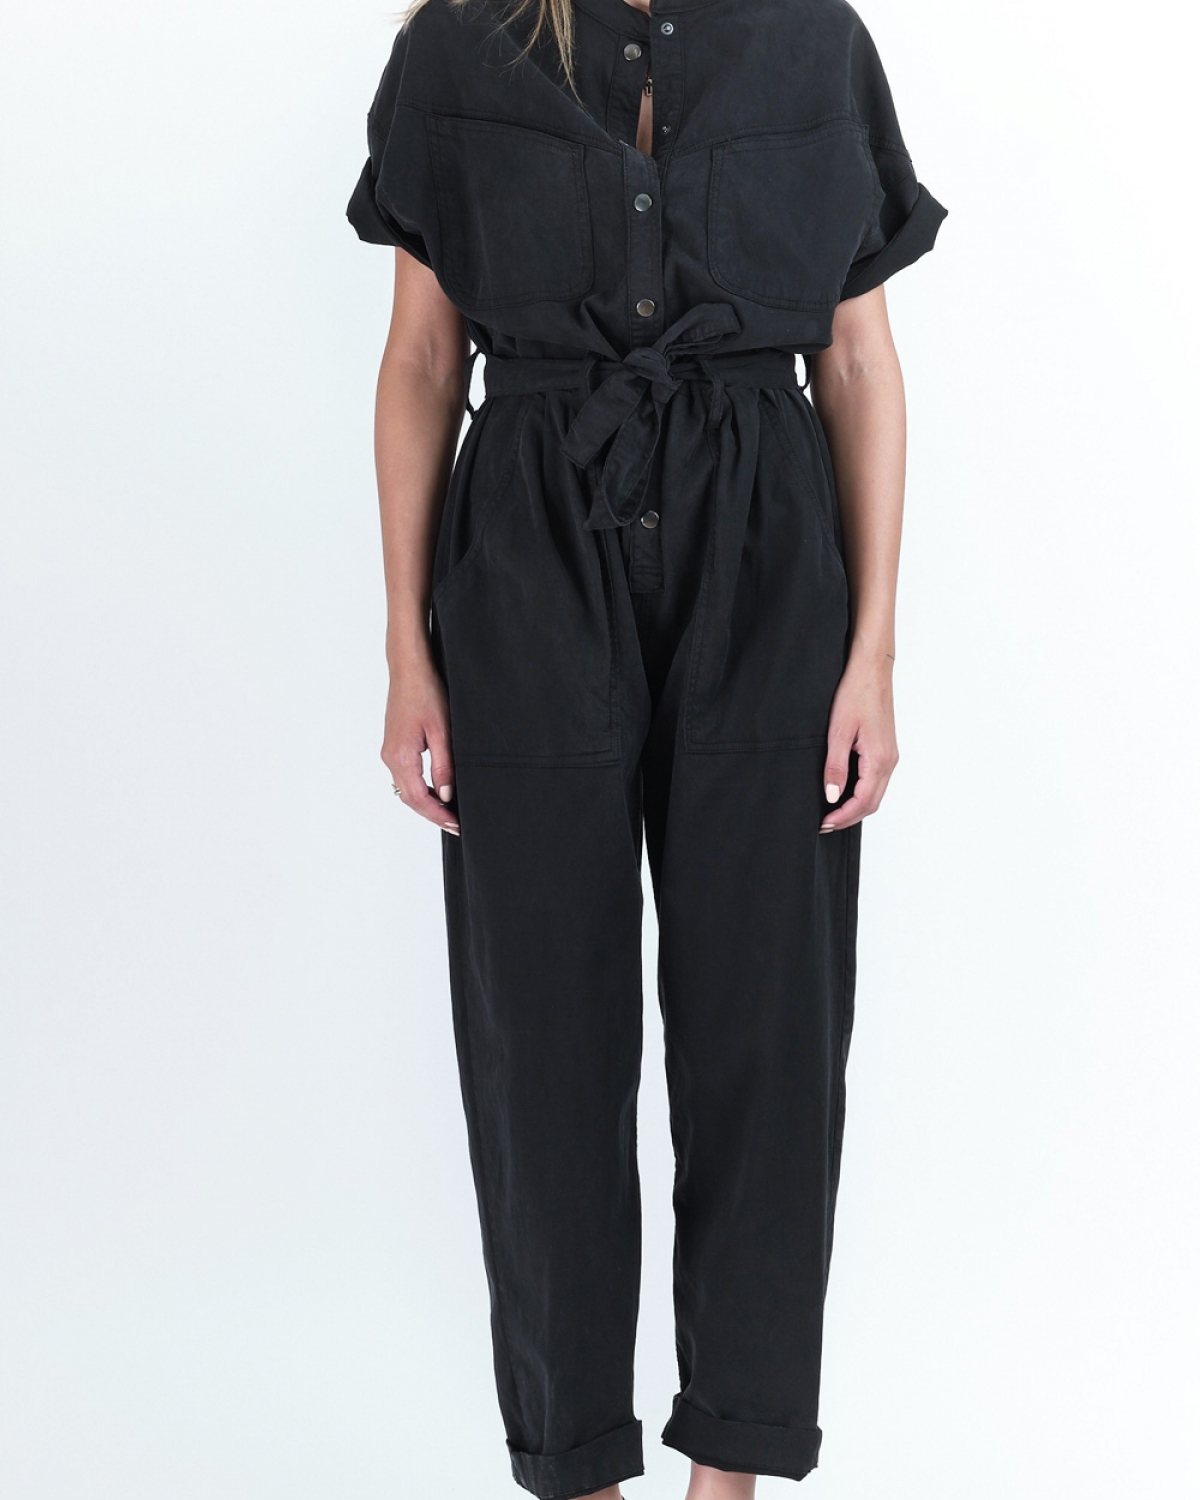 Frida Midnight Black Jumpsuit